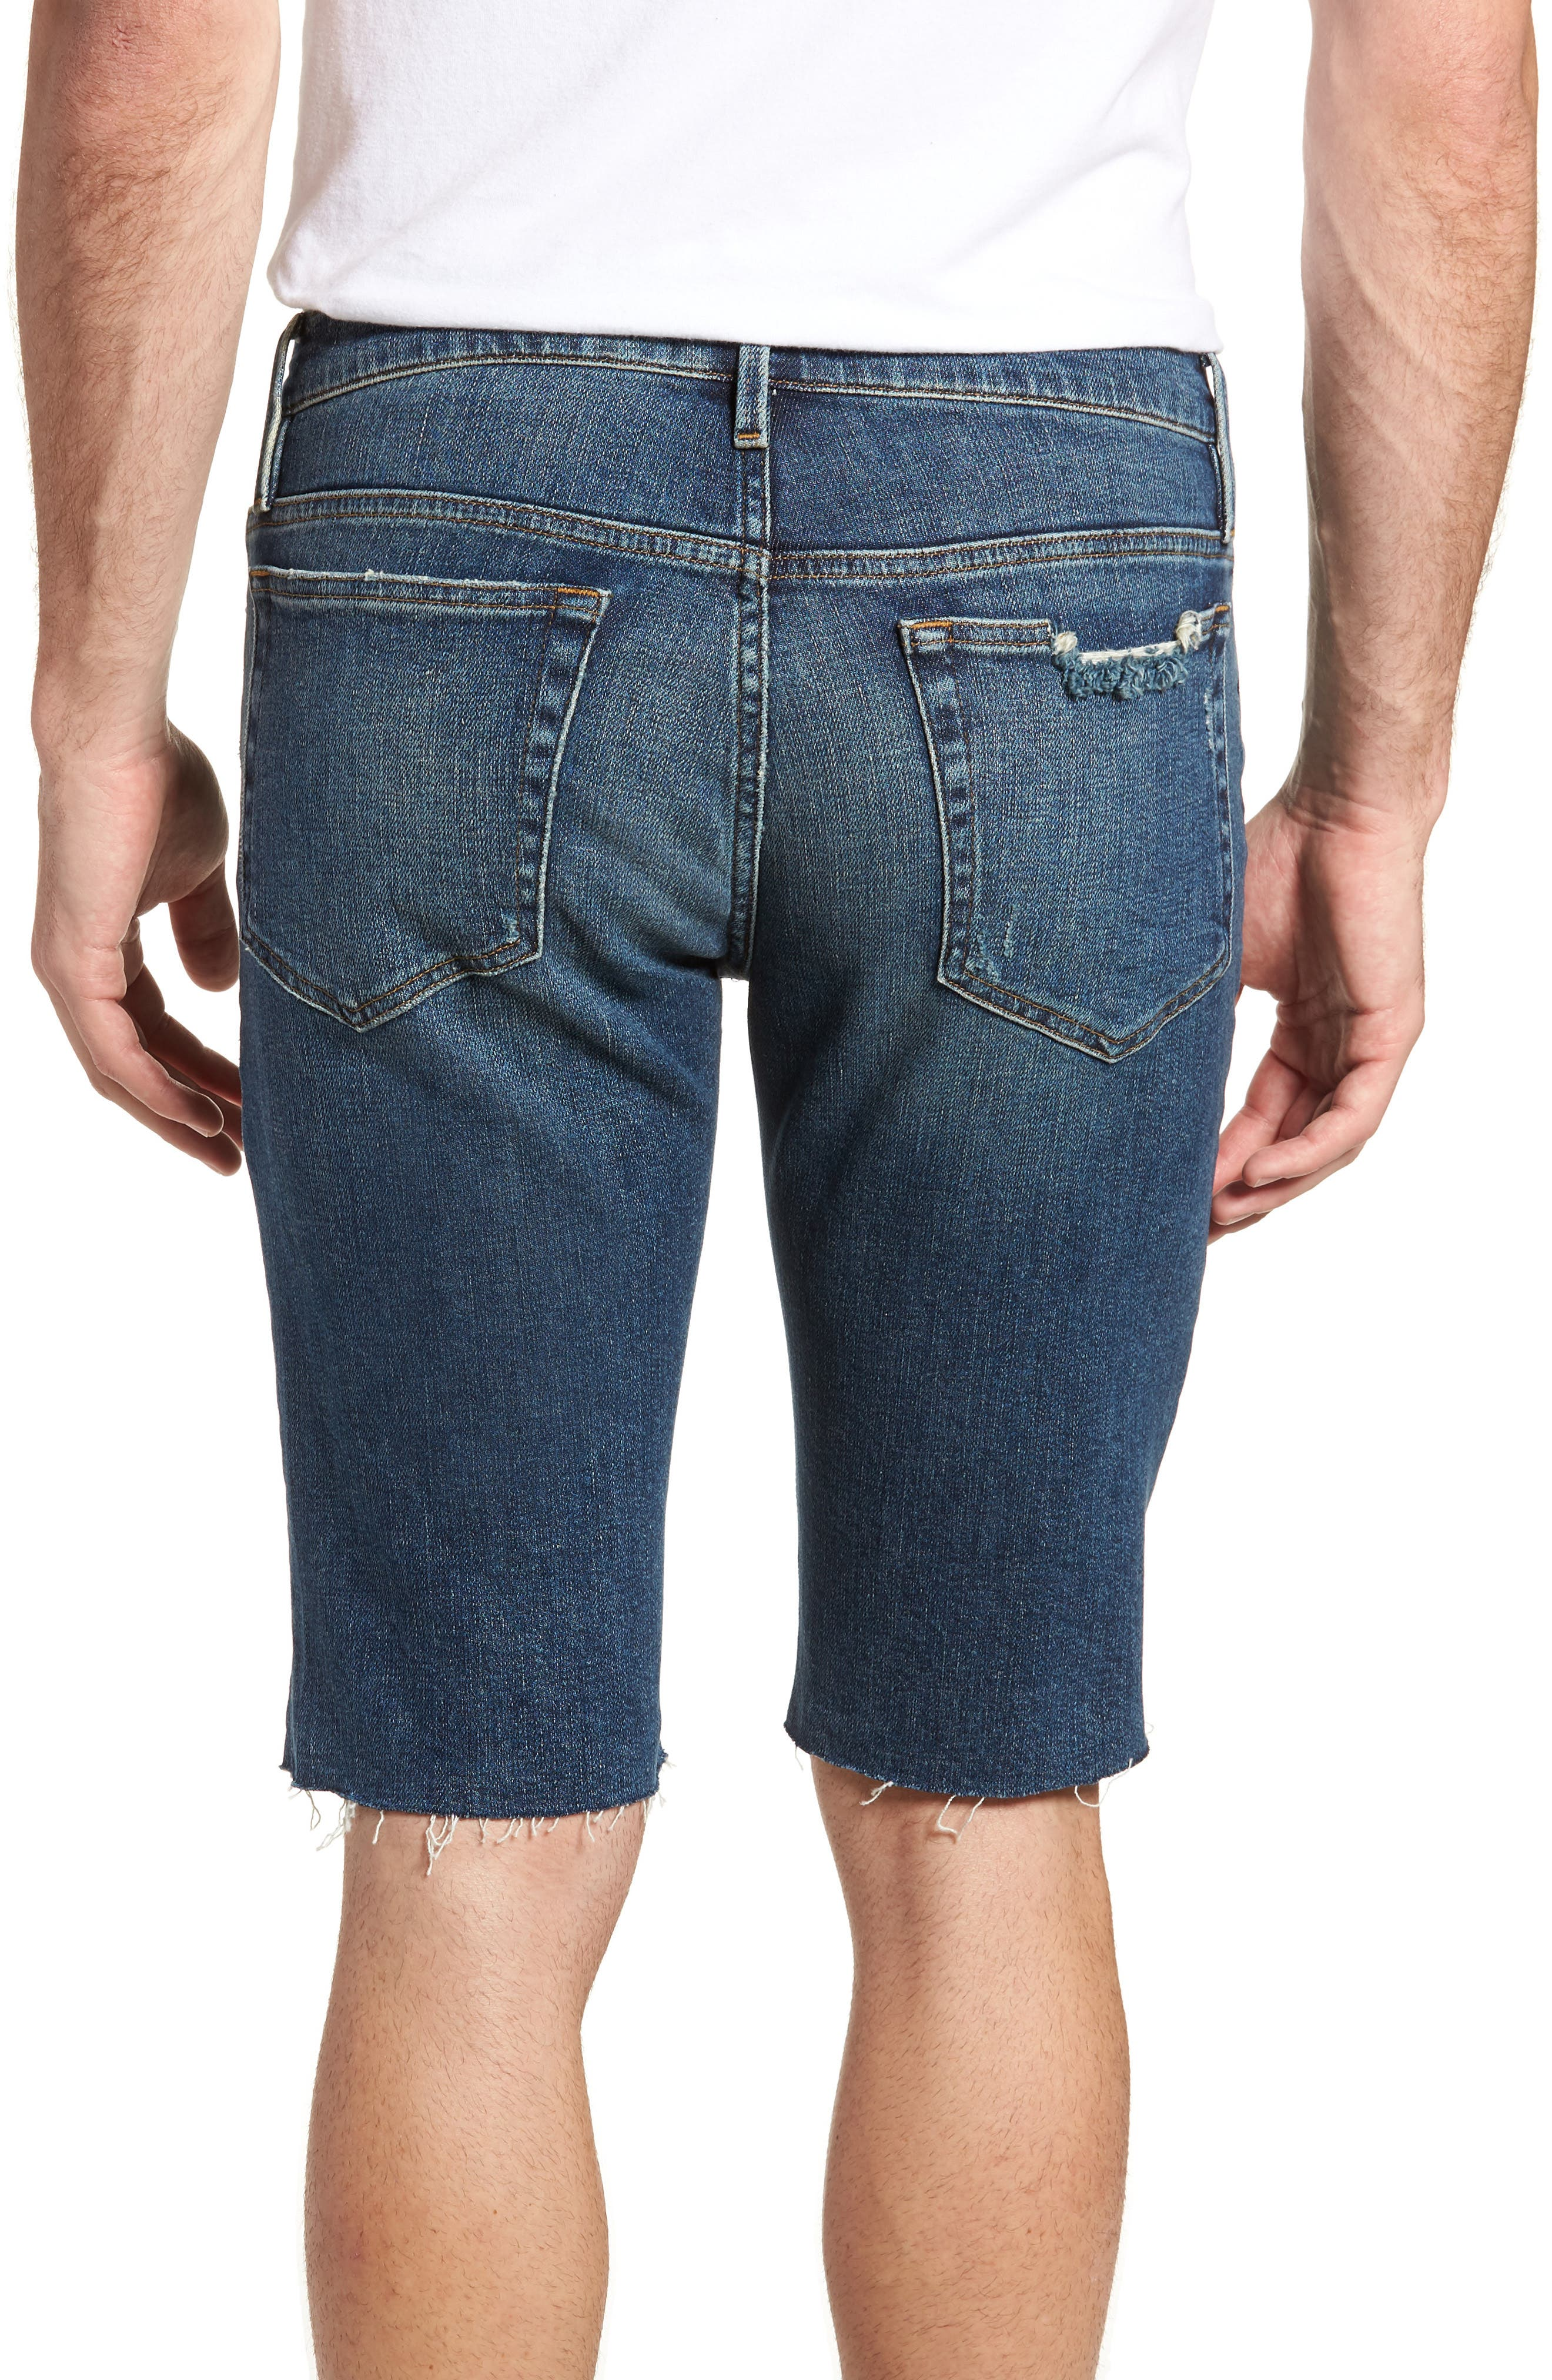 L'Homme Cutoff Shorts,                             Alternate thumbnail 2, color,                             KIRBY